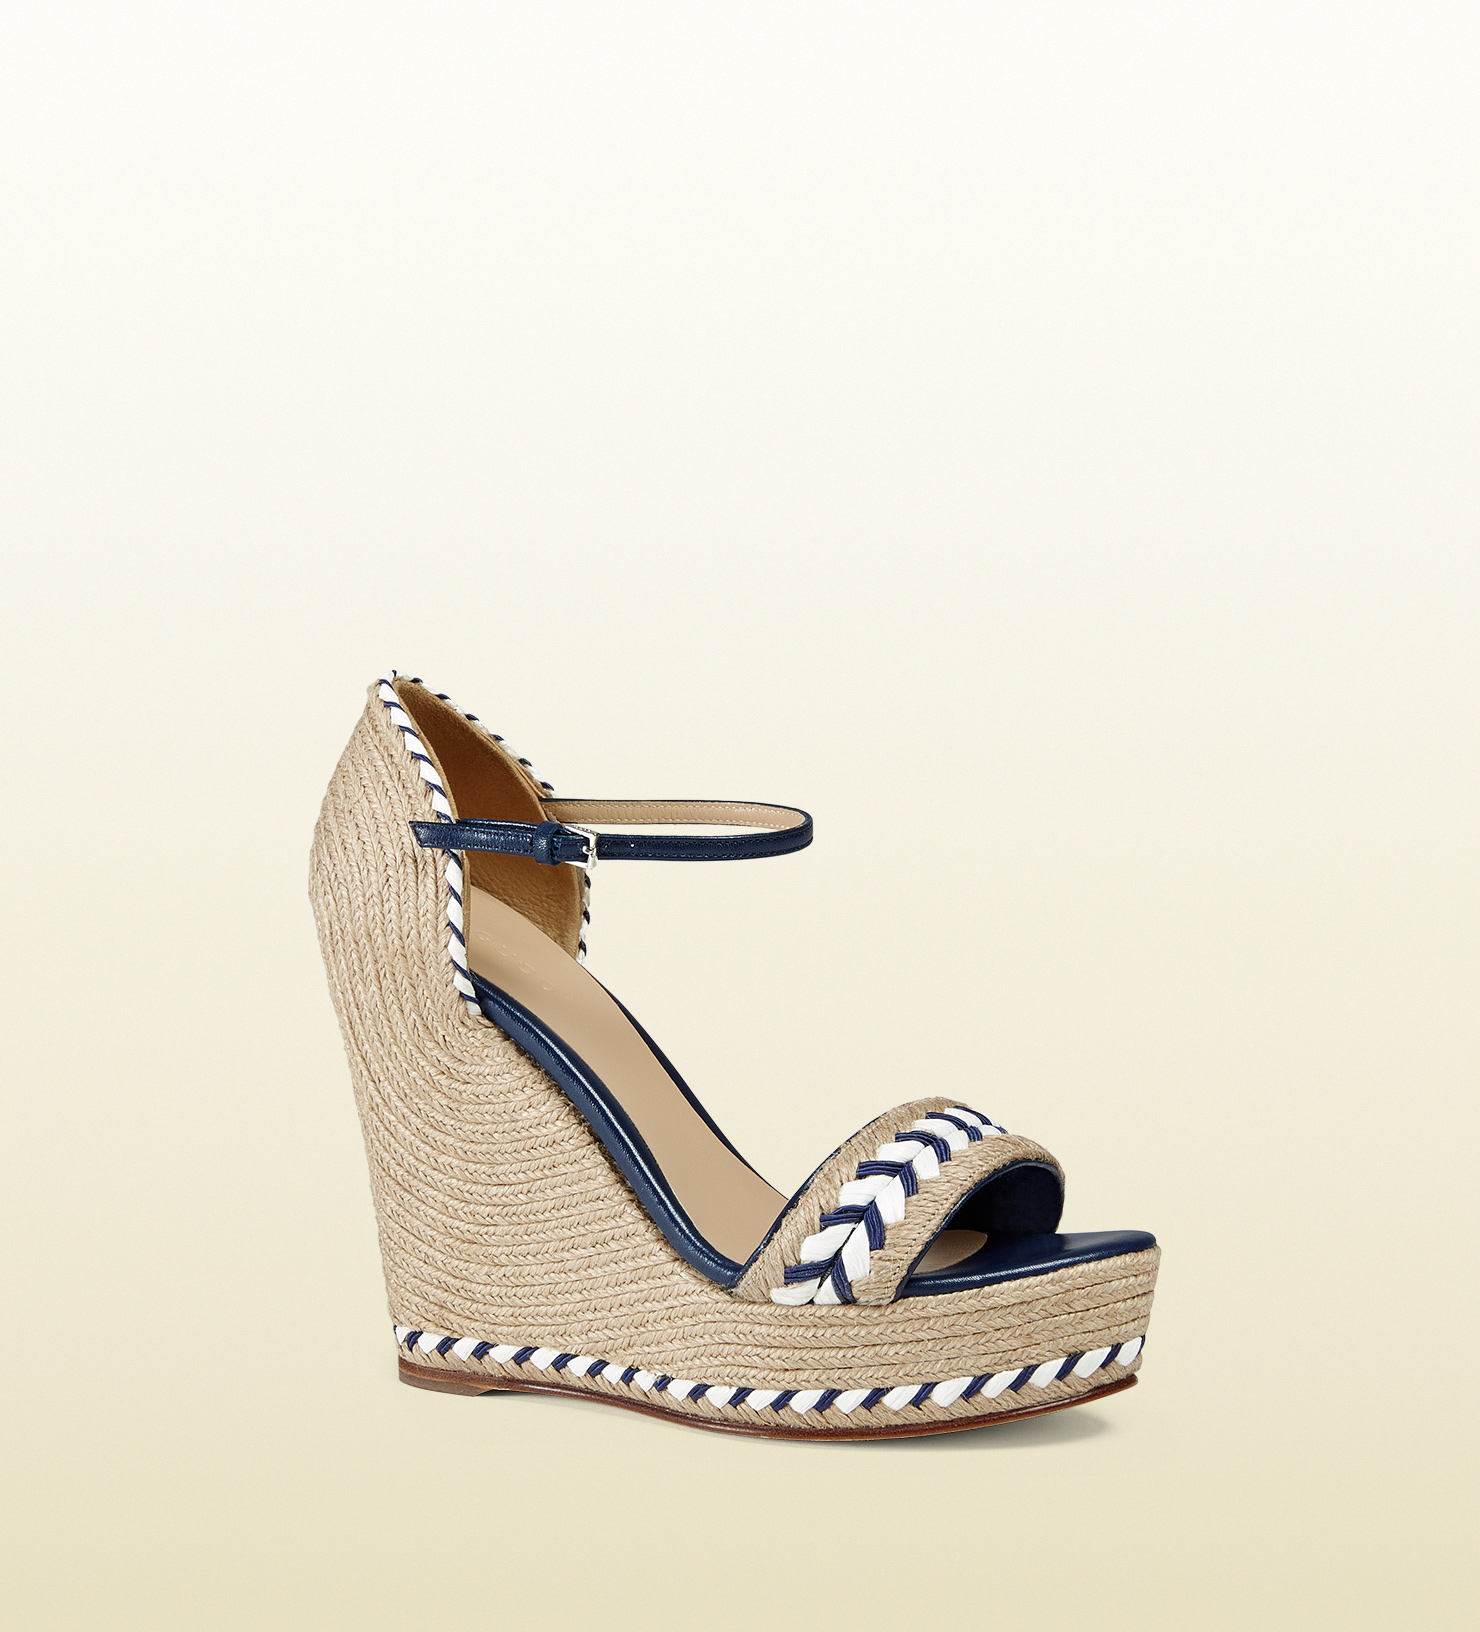 af3b39fd2370 Gucci Leather Sandal With Cord Wedge in Blue - Lyst